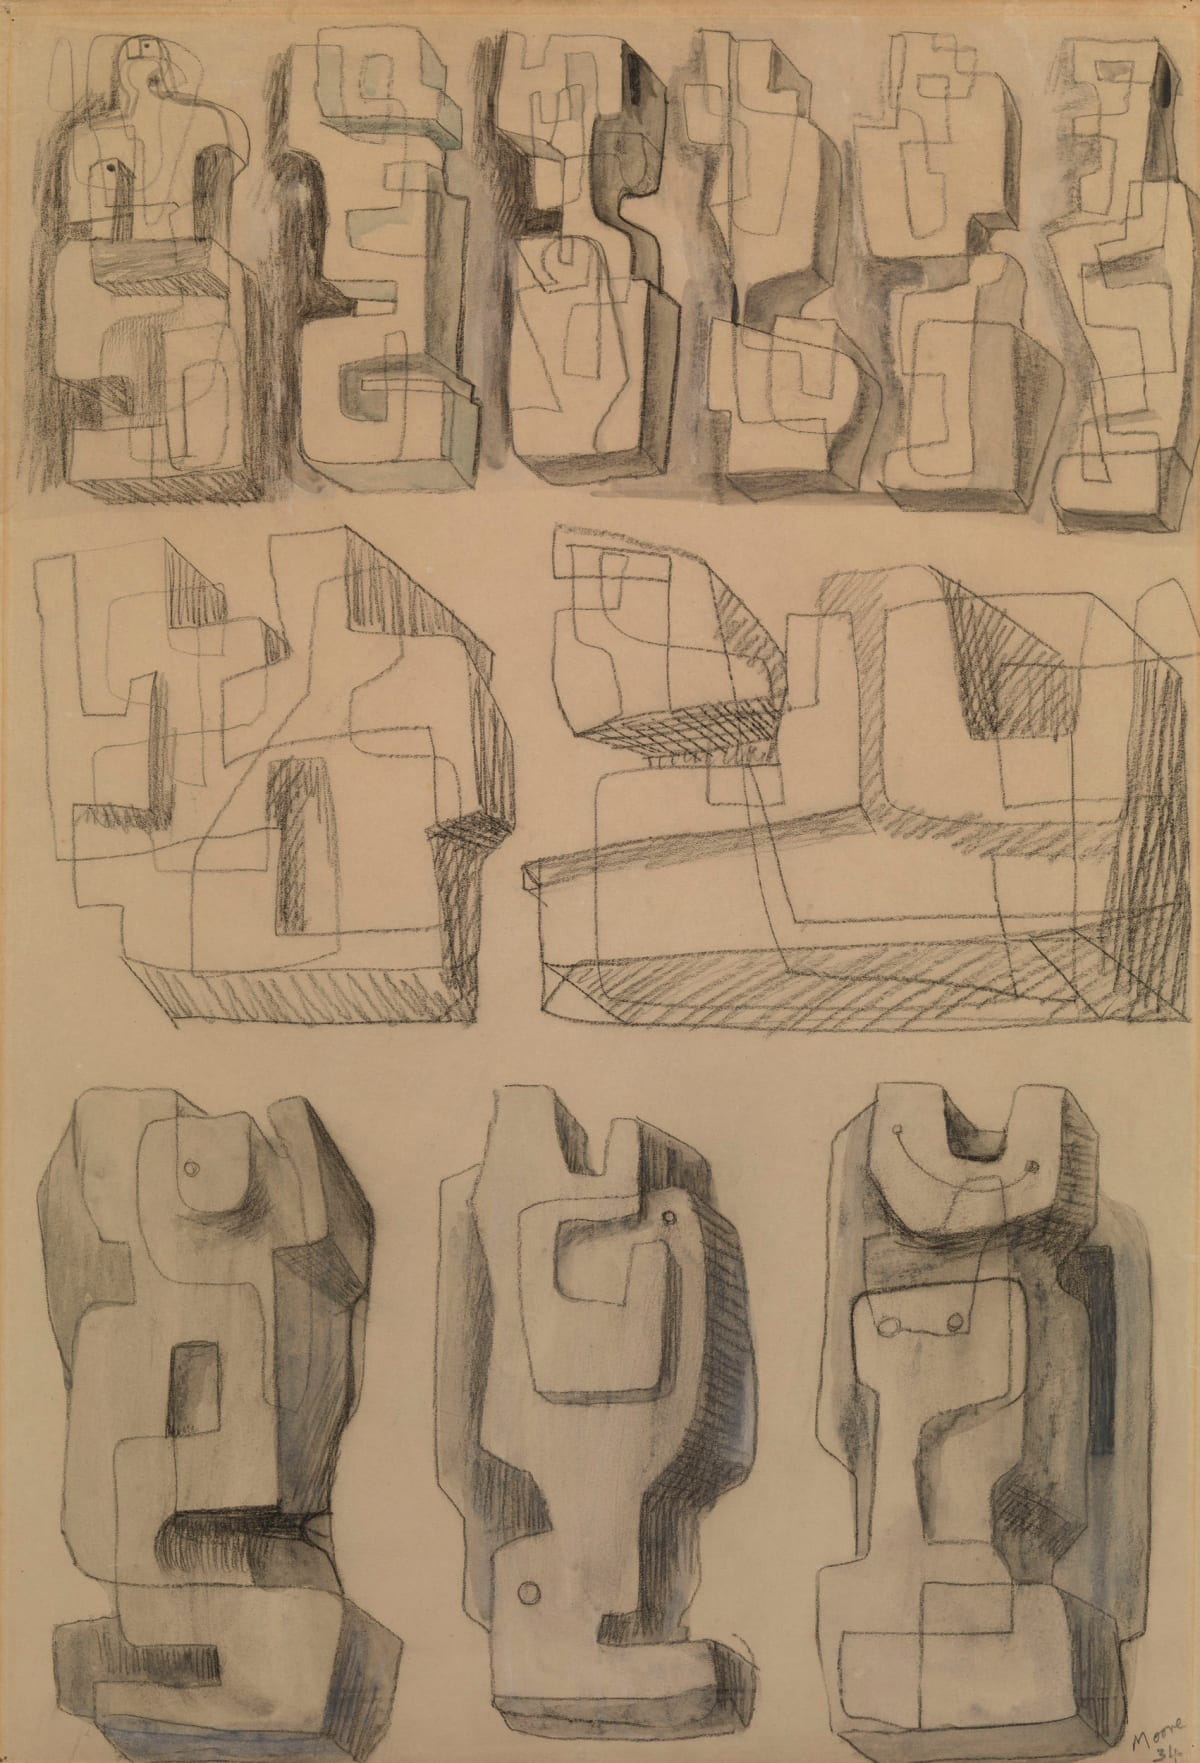 Henry Moore, Square Forms - Eleven studies for sculptures, 1936